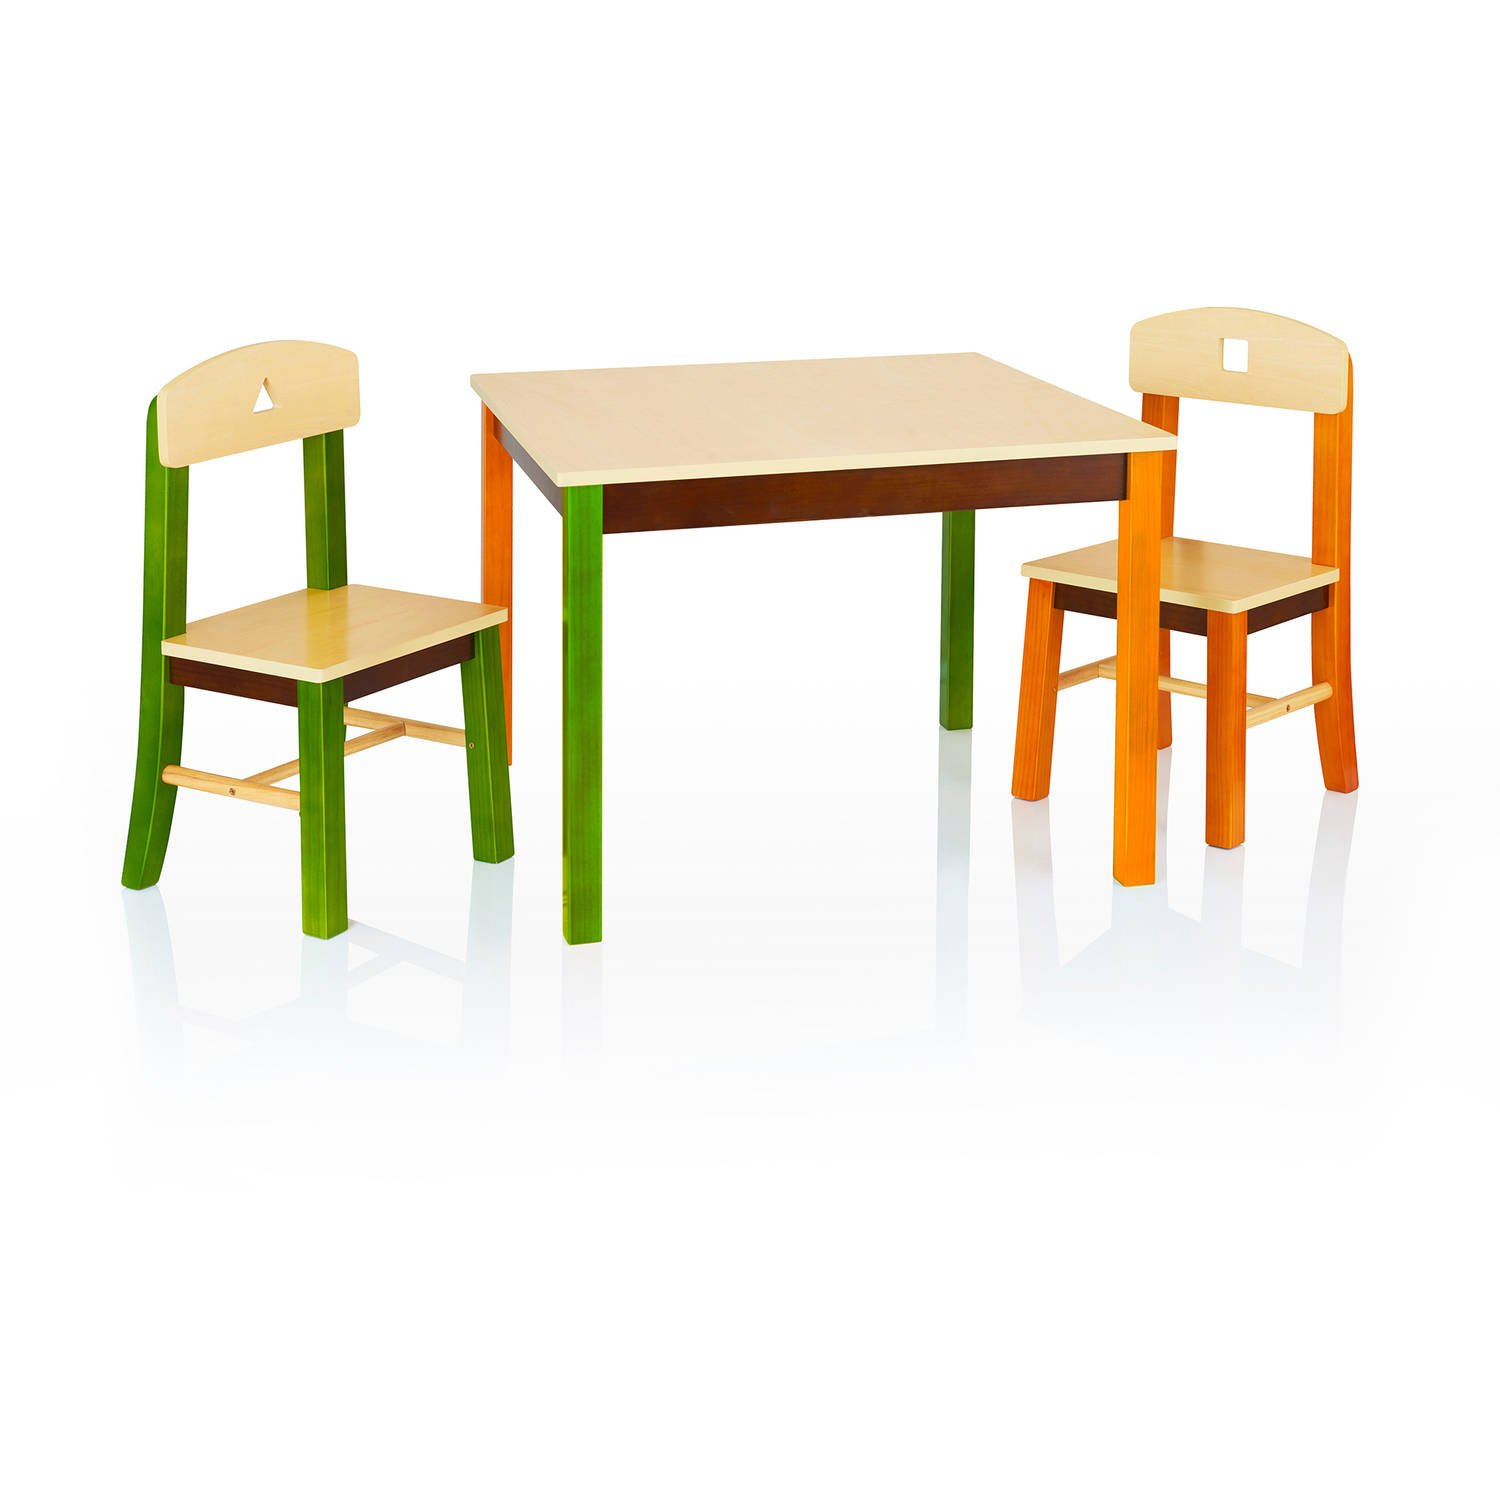 Amazon com guidecraft see and store table and chair set kids furniture childrens study activity table home kitchen